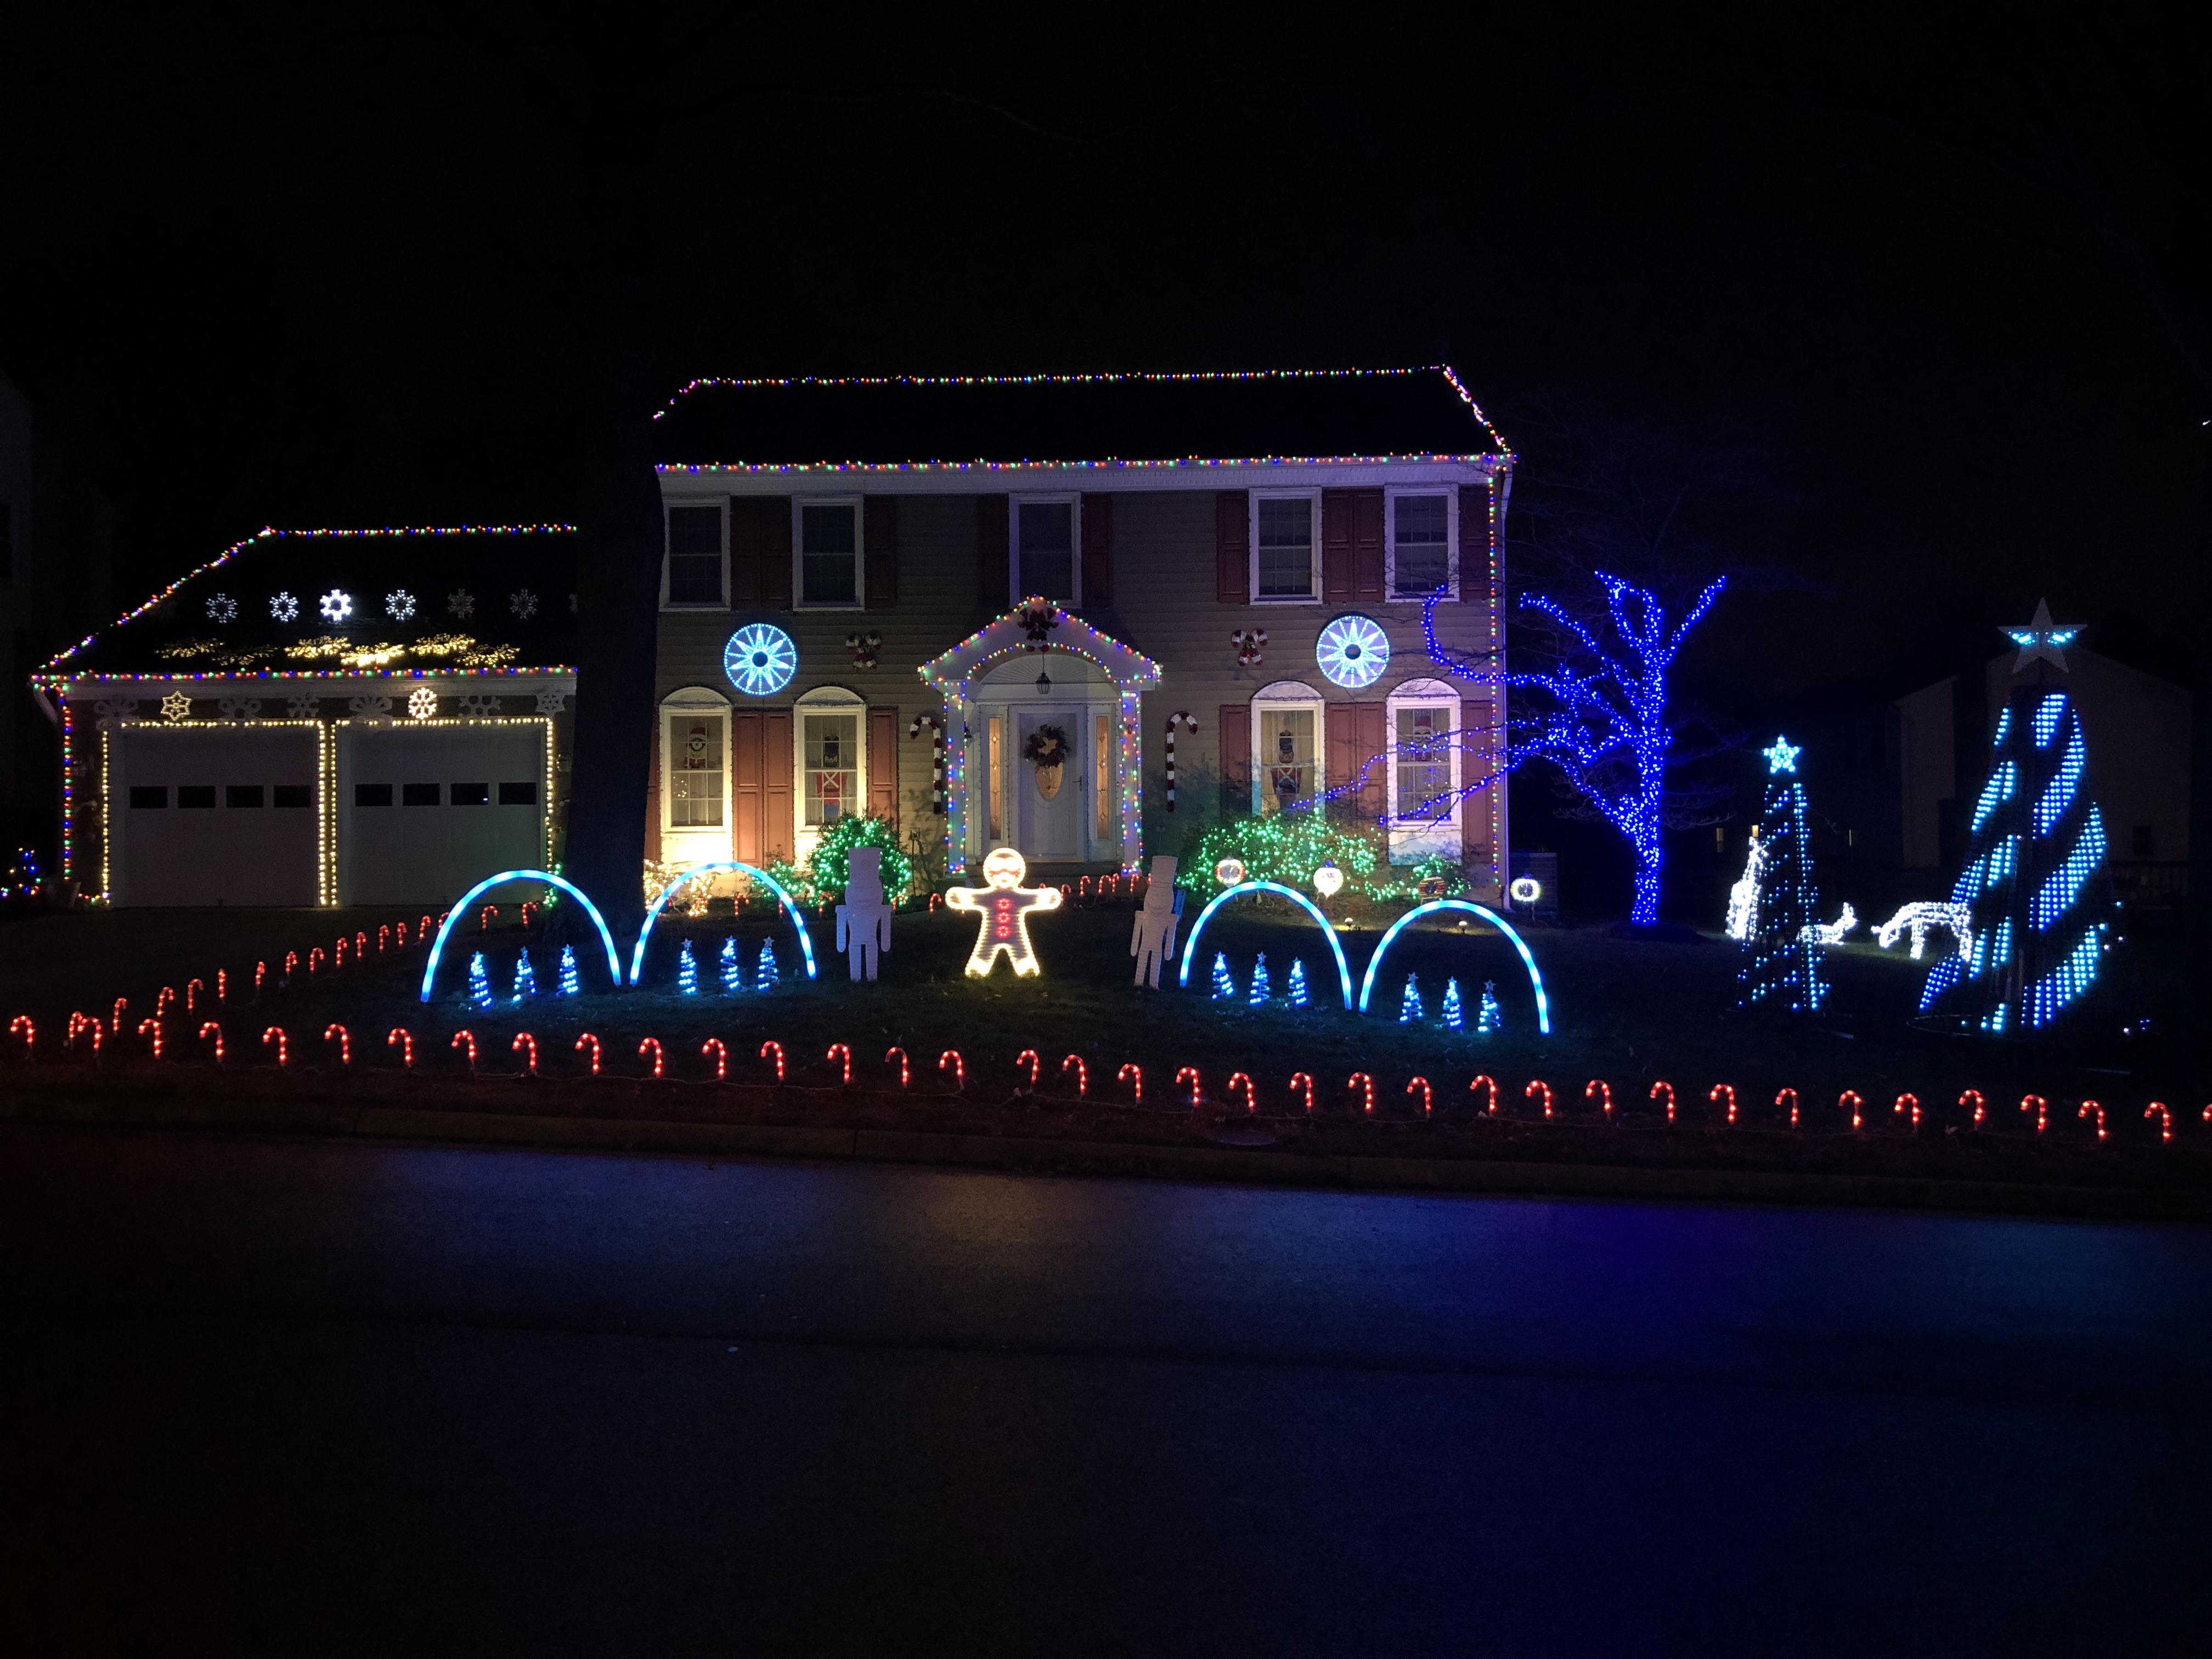 Franklin Christmas 2021 File 2021 01 05 20 36 47 House With Christmas Lights Along Thorngate Drive In The Franklin Farm Section Of Oak Hill Fairfax County Virginia Jpg Wikimedia Commons